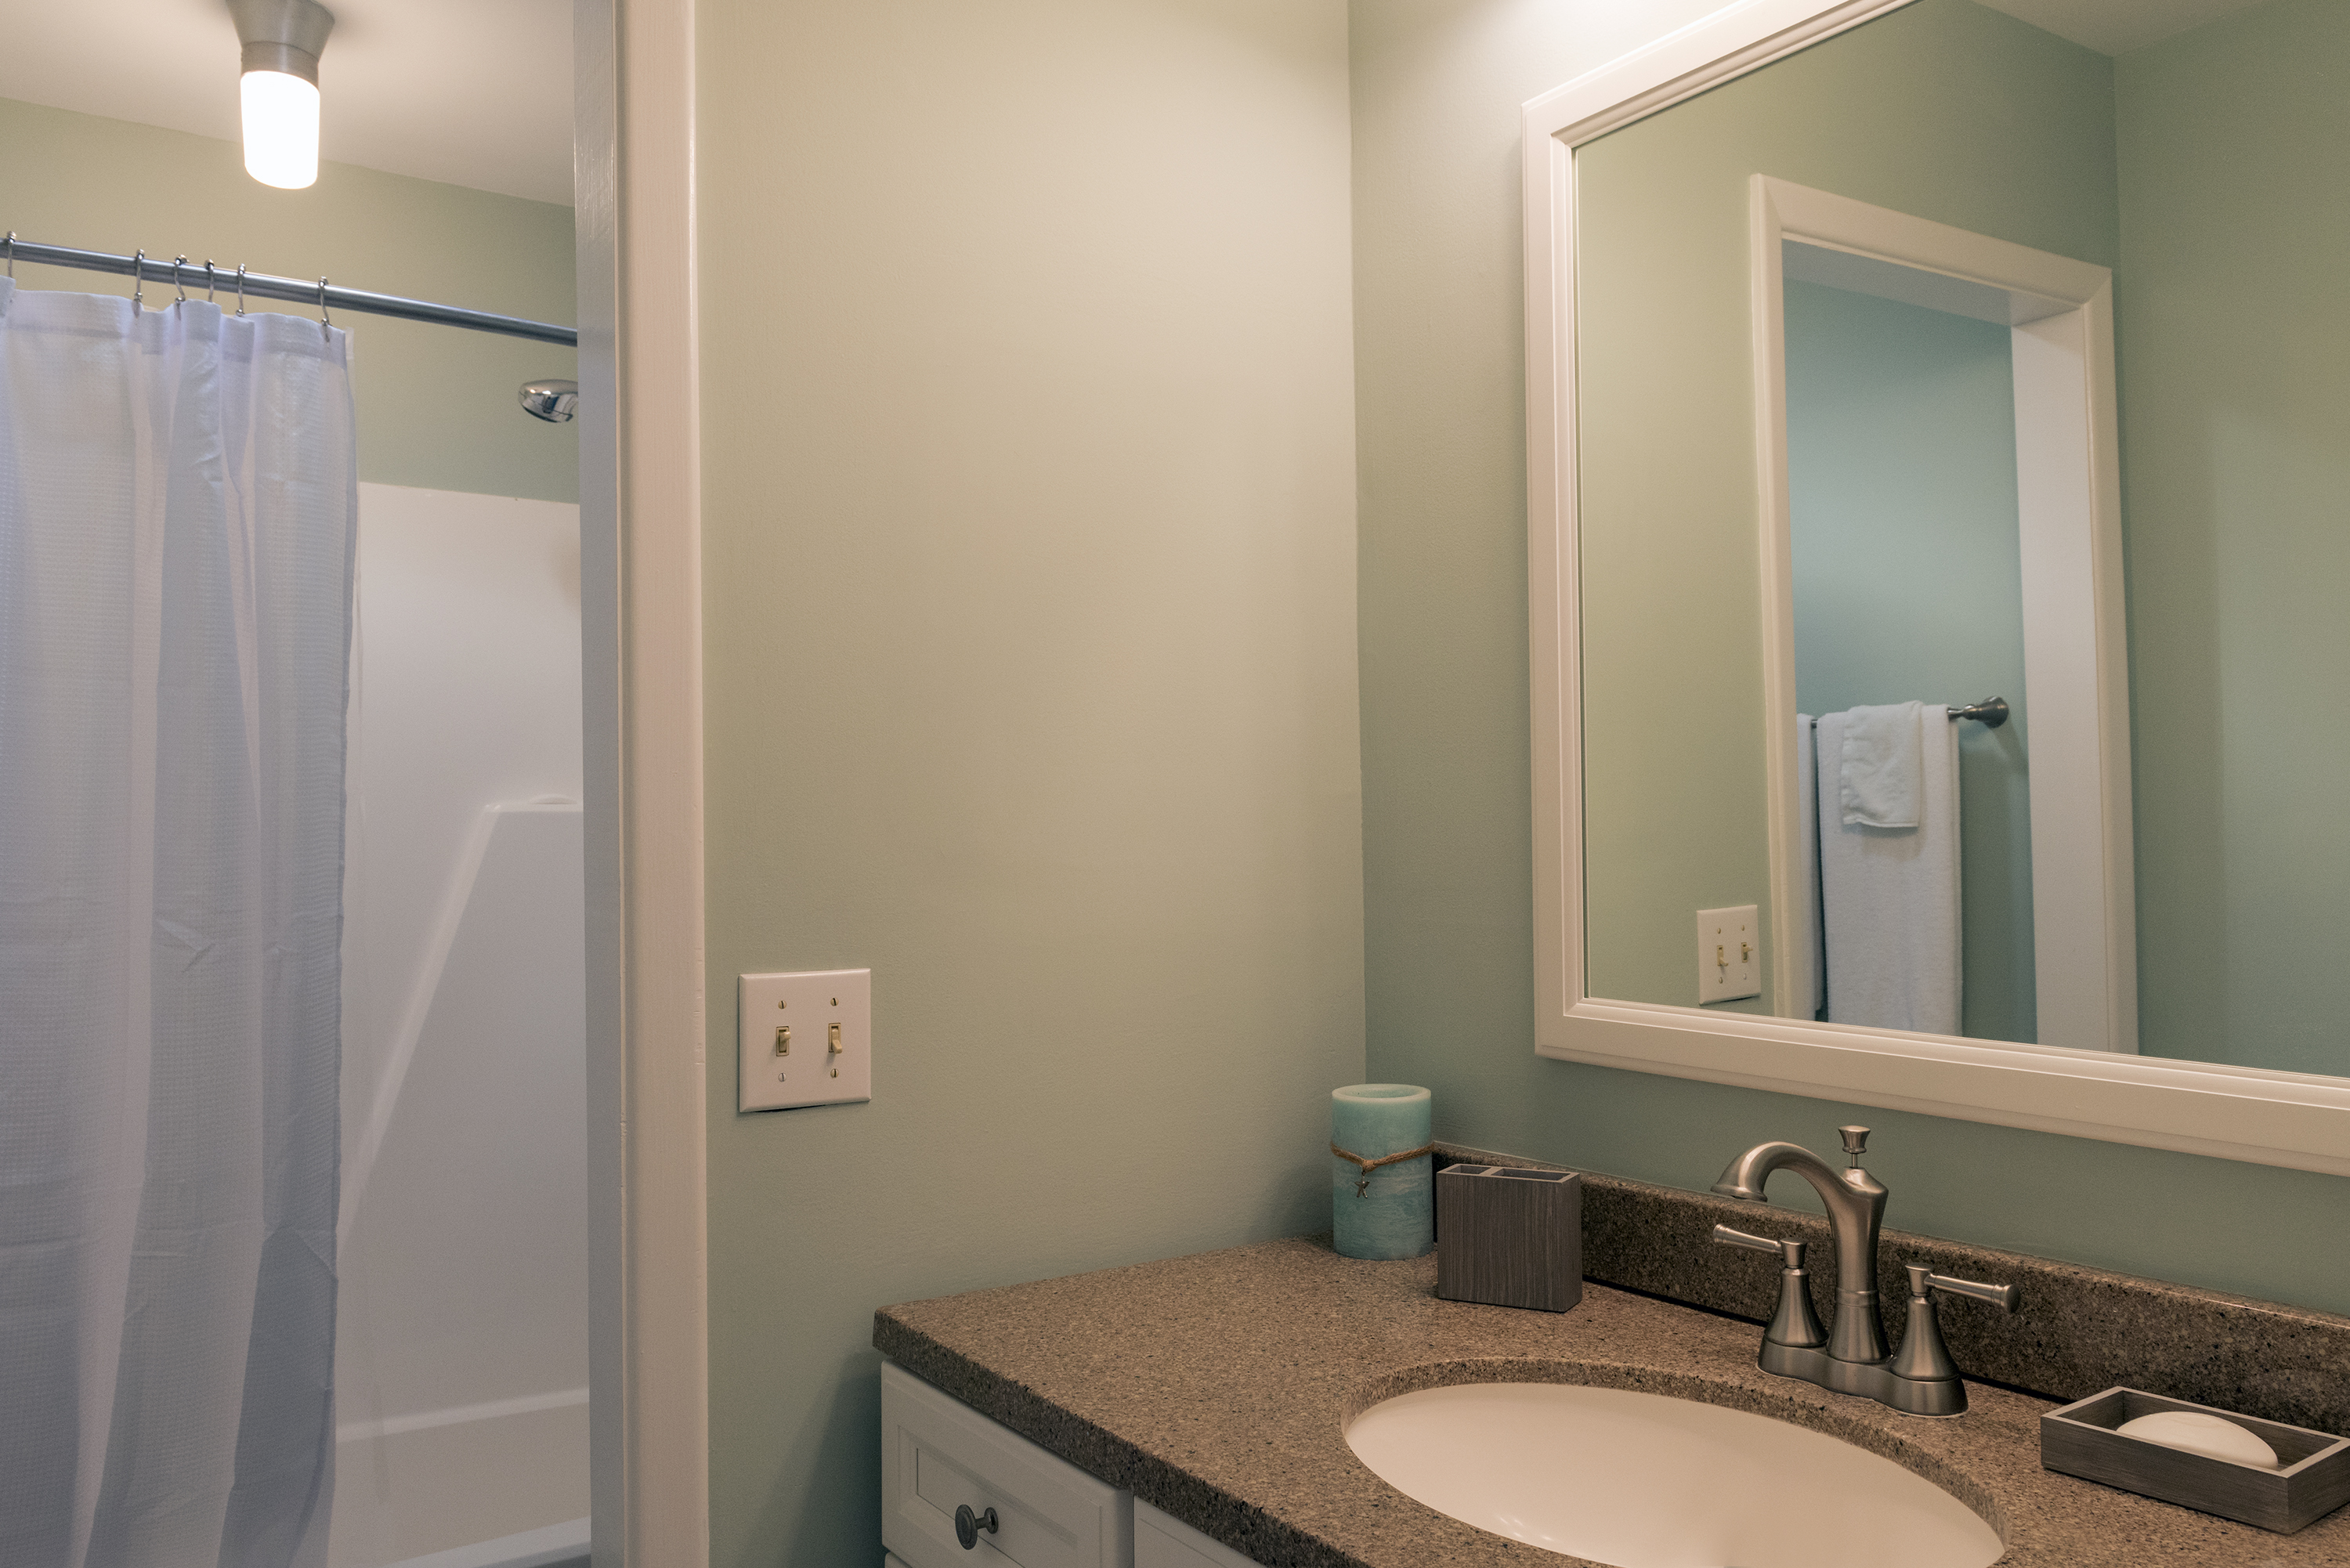 The master bath features a skylight that brightens the space.